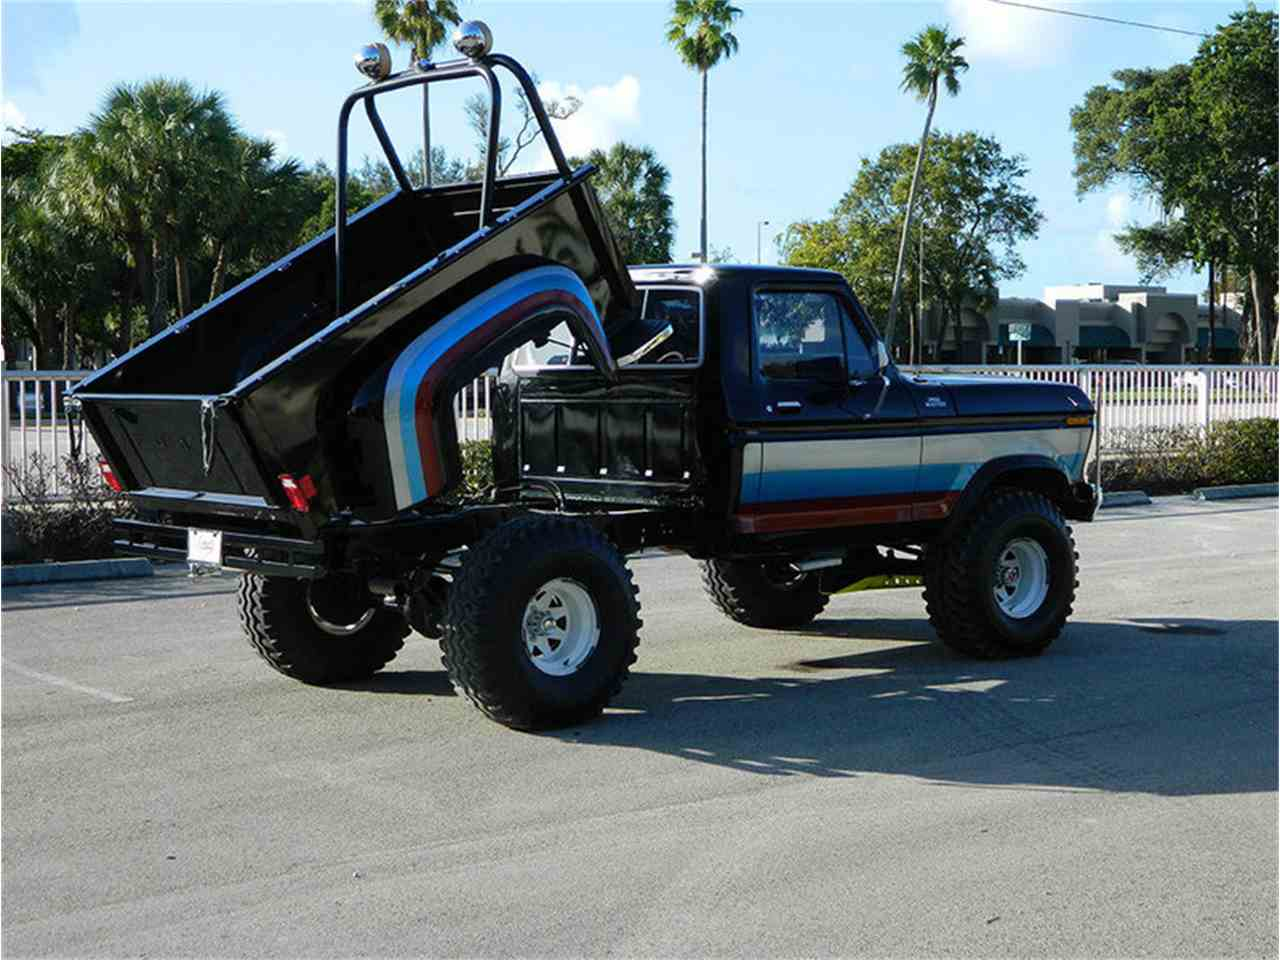 F Plow Truck Dumptruck X Project Snow Plow Ford in addition Ford F Pickup E together with Original in addition  as well Ford F Ranger. on 1978 ford f 150 stepside custom